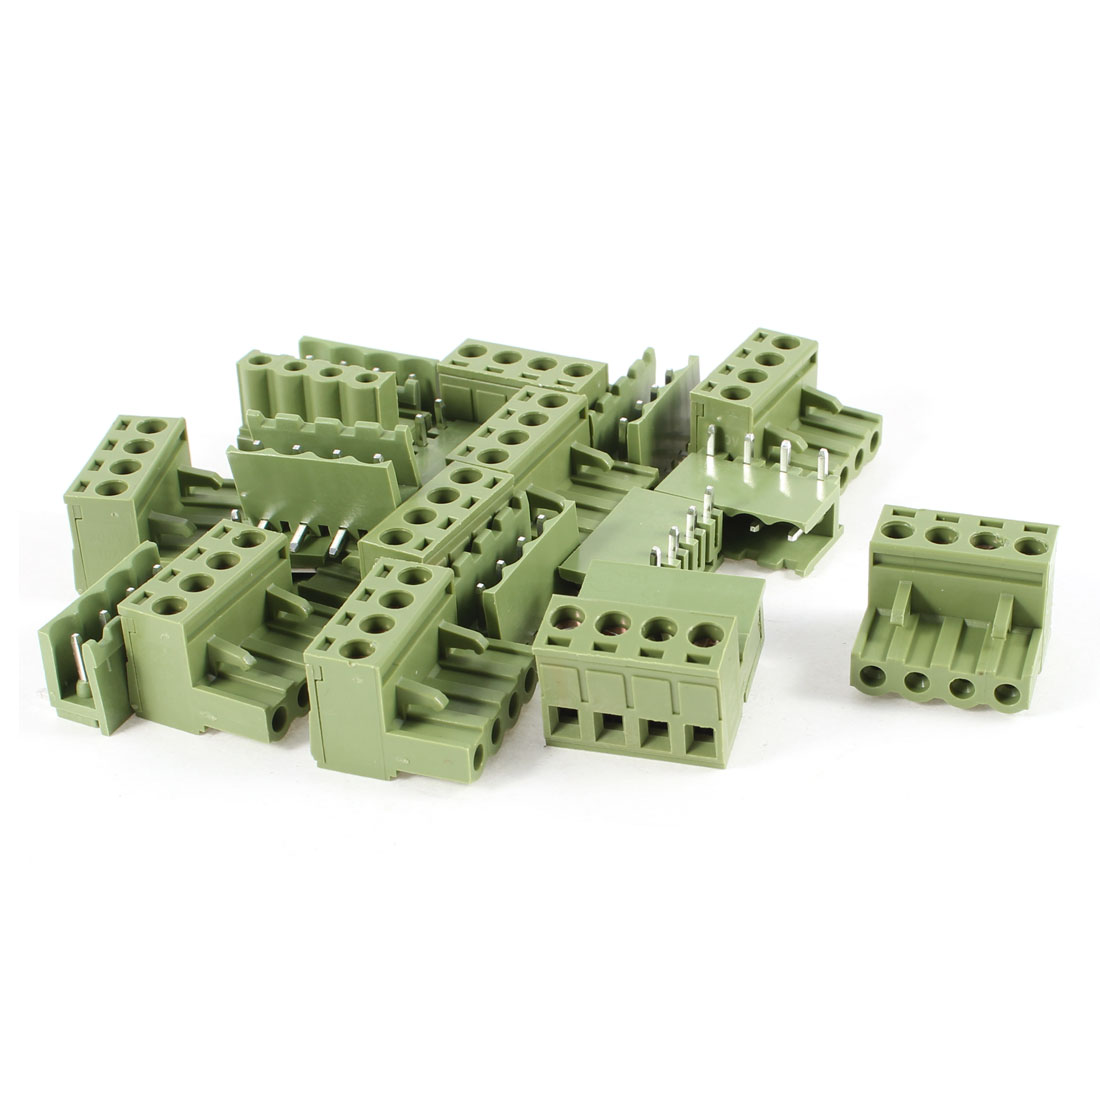 10 Pcs 300V 10A Single Row 4 Positions Pluggable Terminal Block Oliver Green